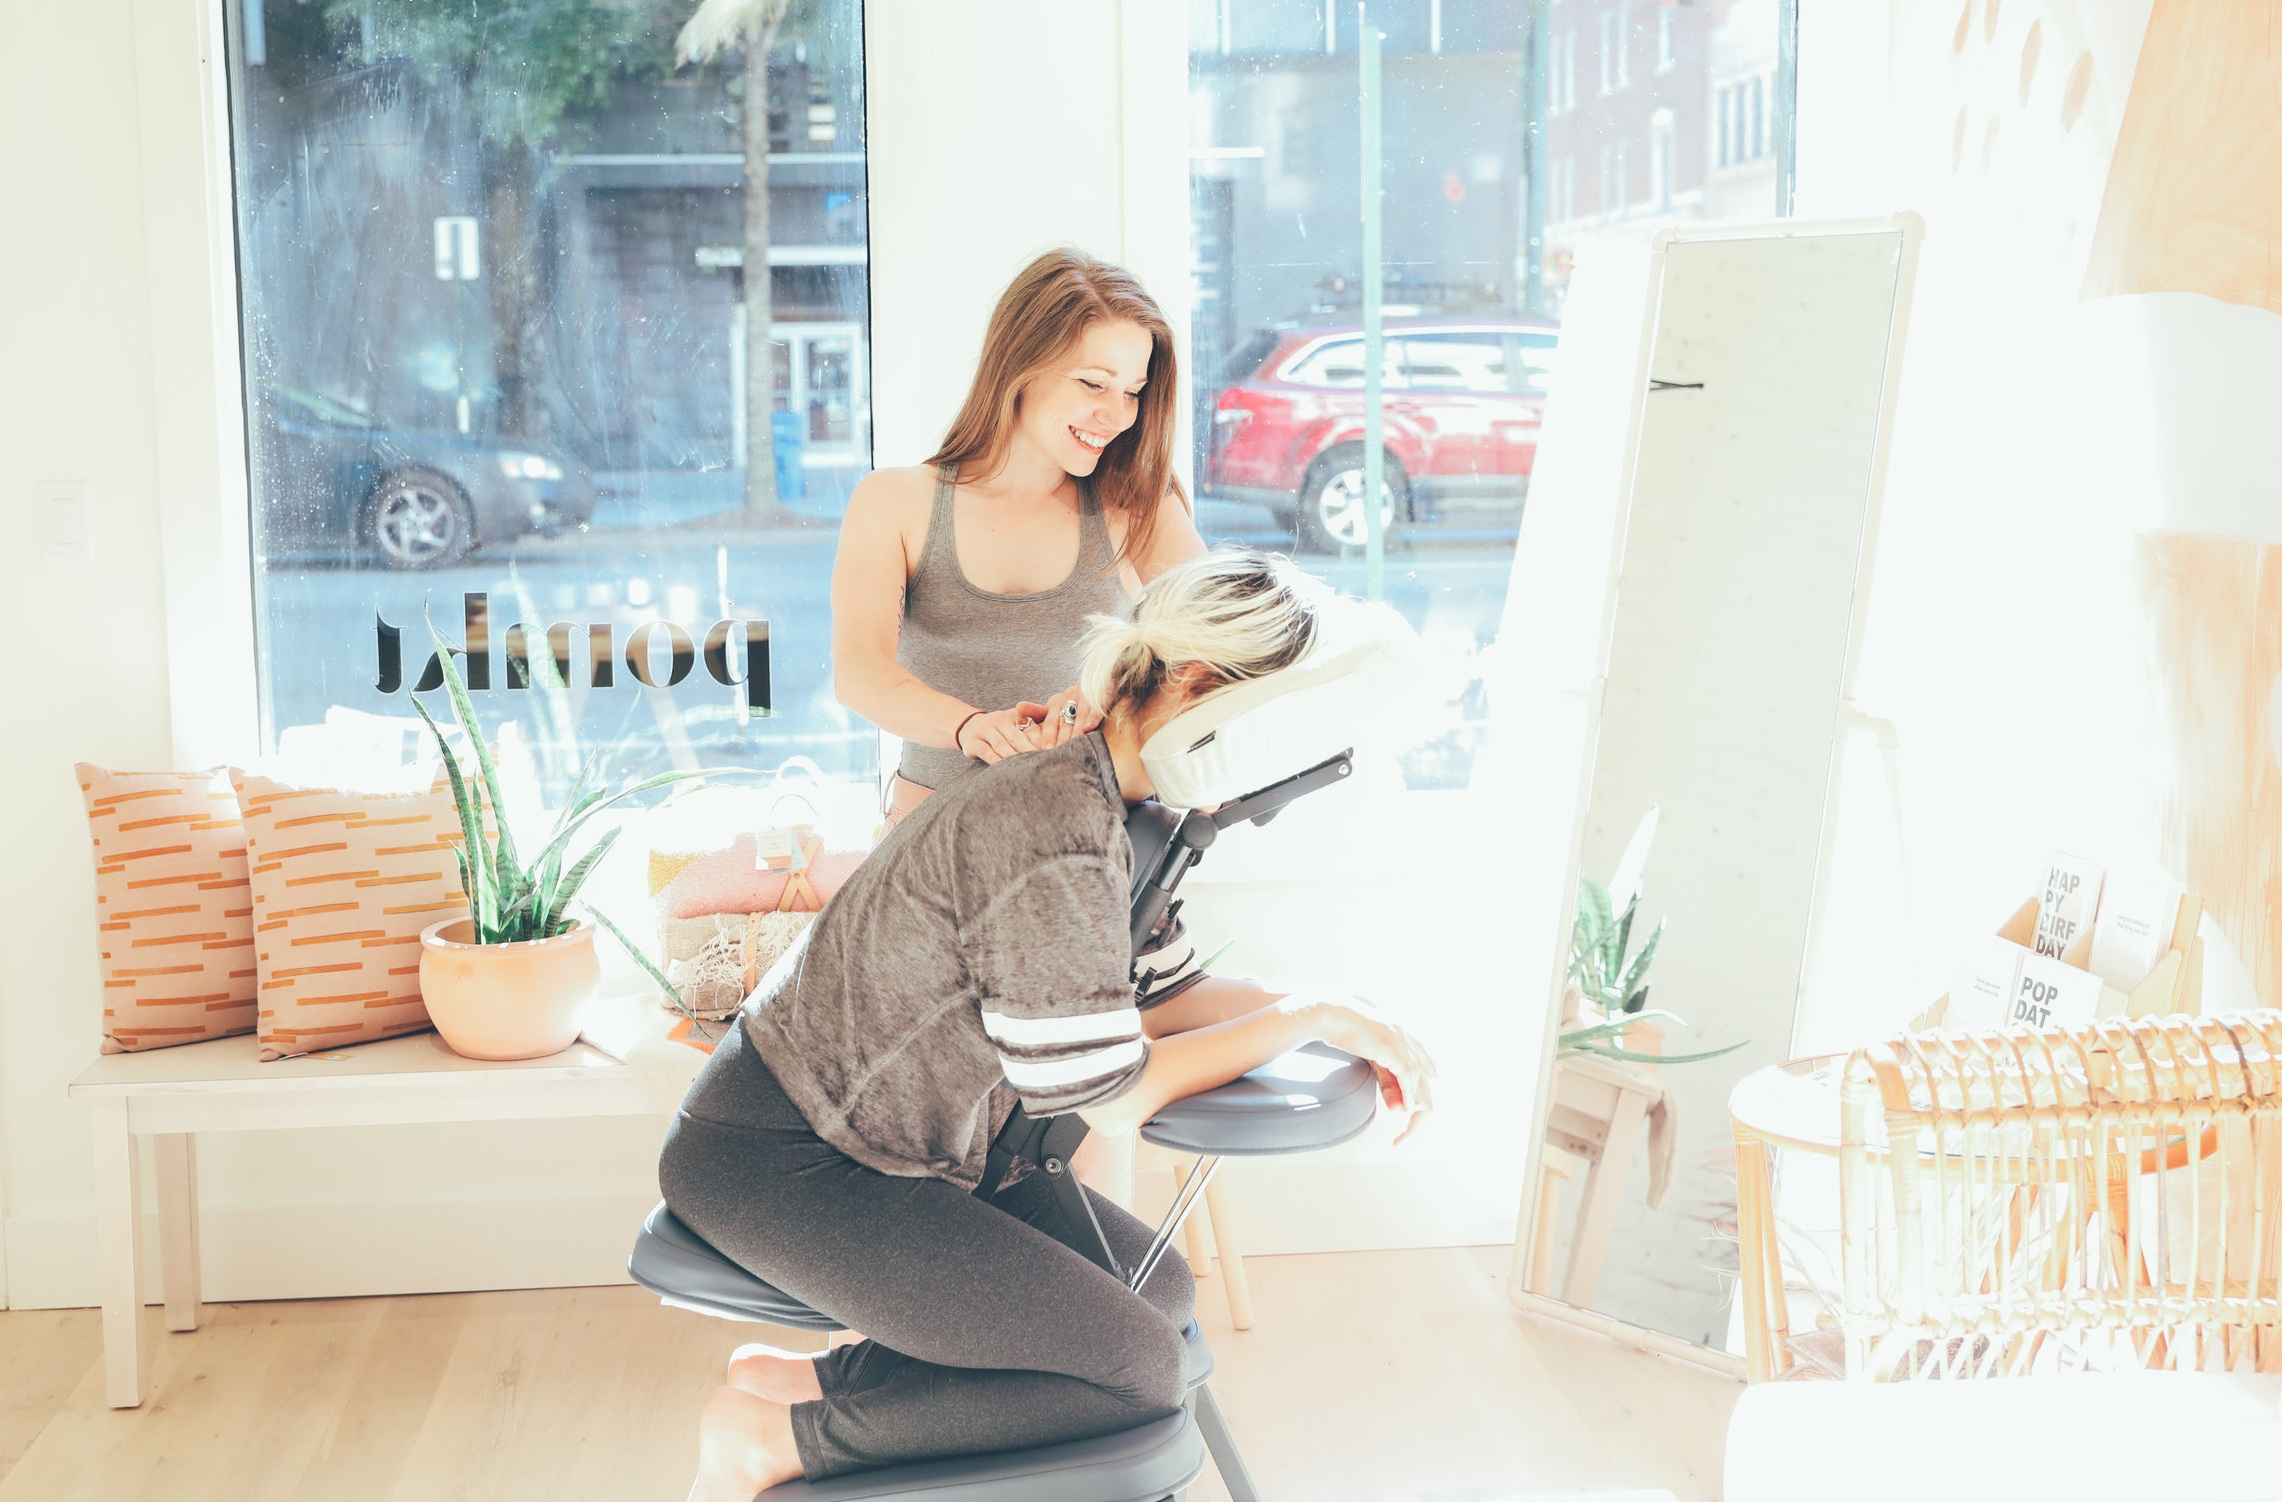 Massage Therapy - Summer of Self Care